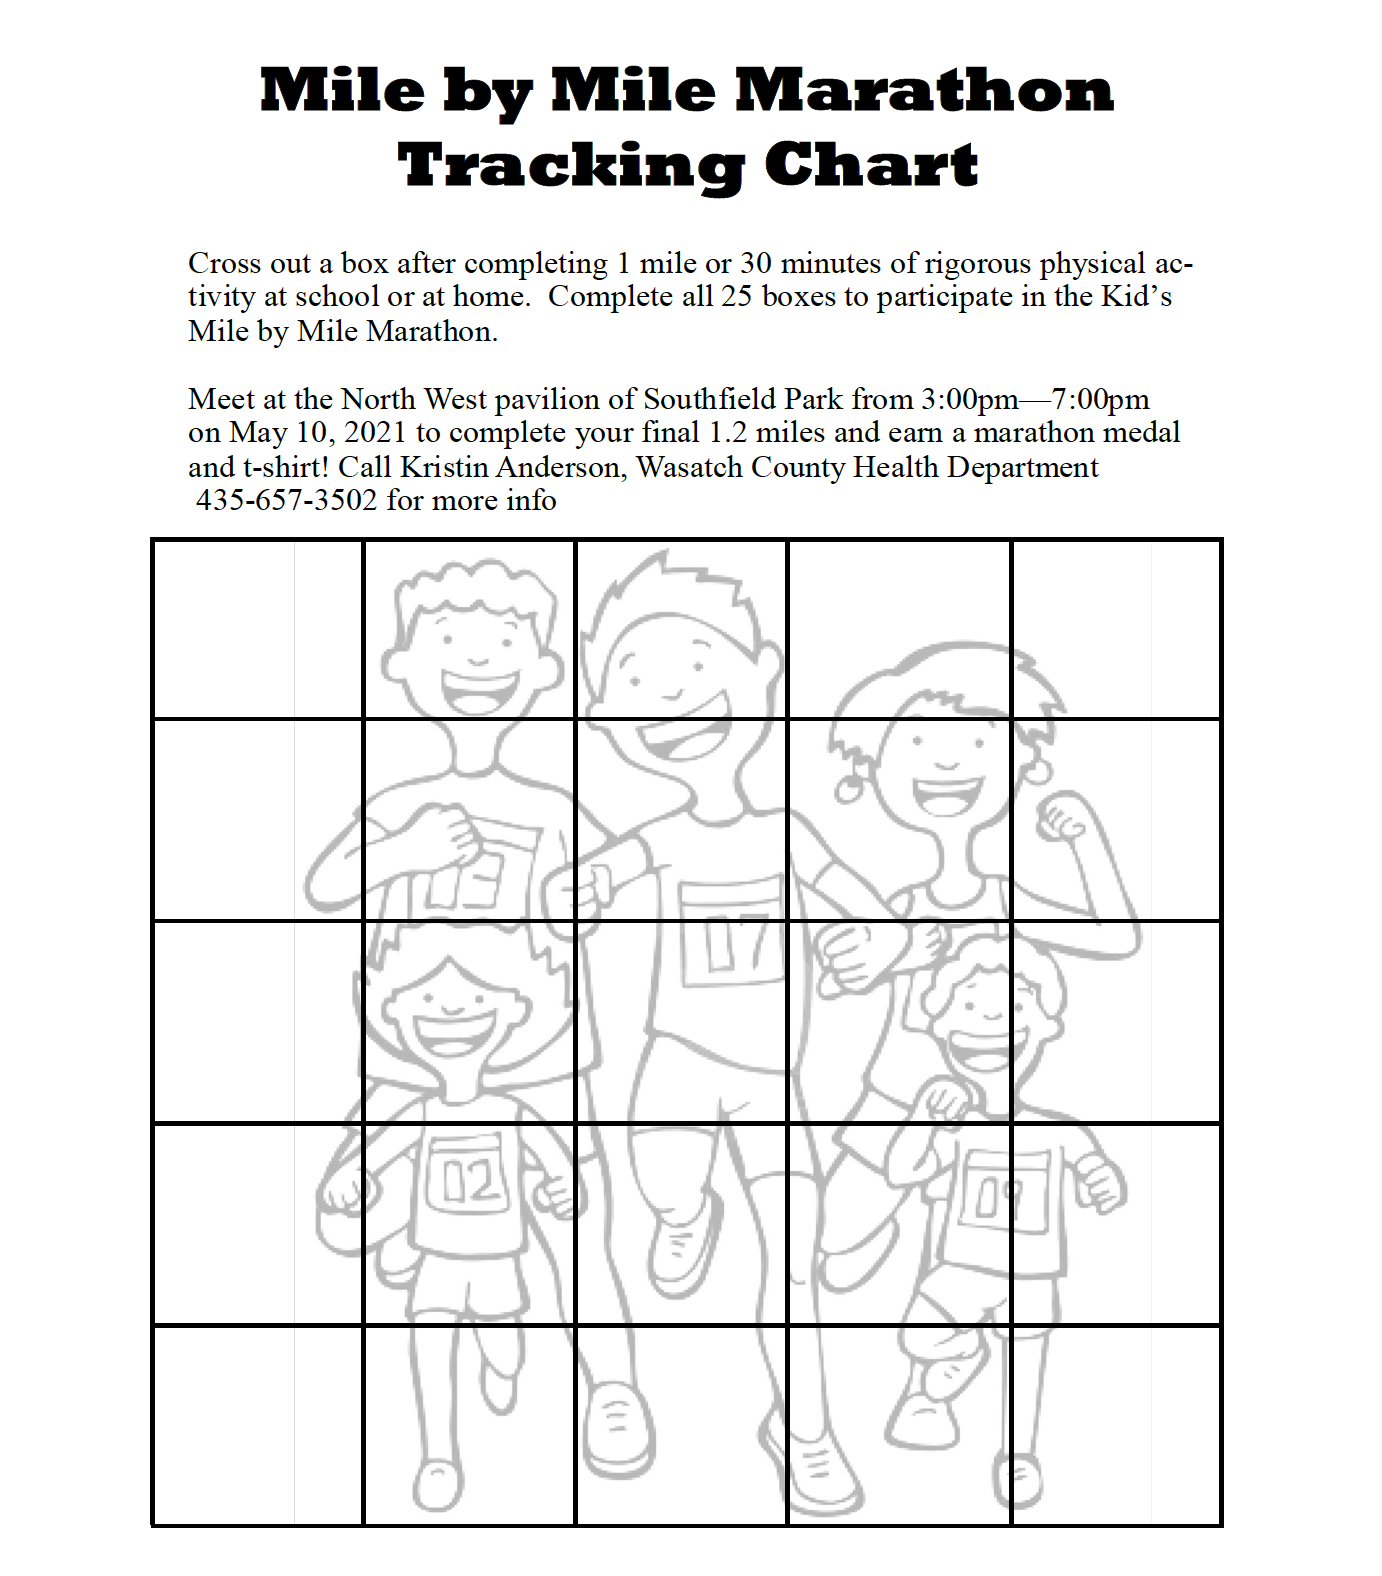 Tracking Chart